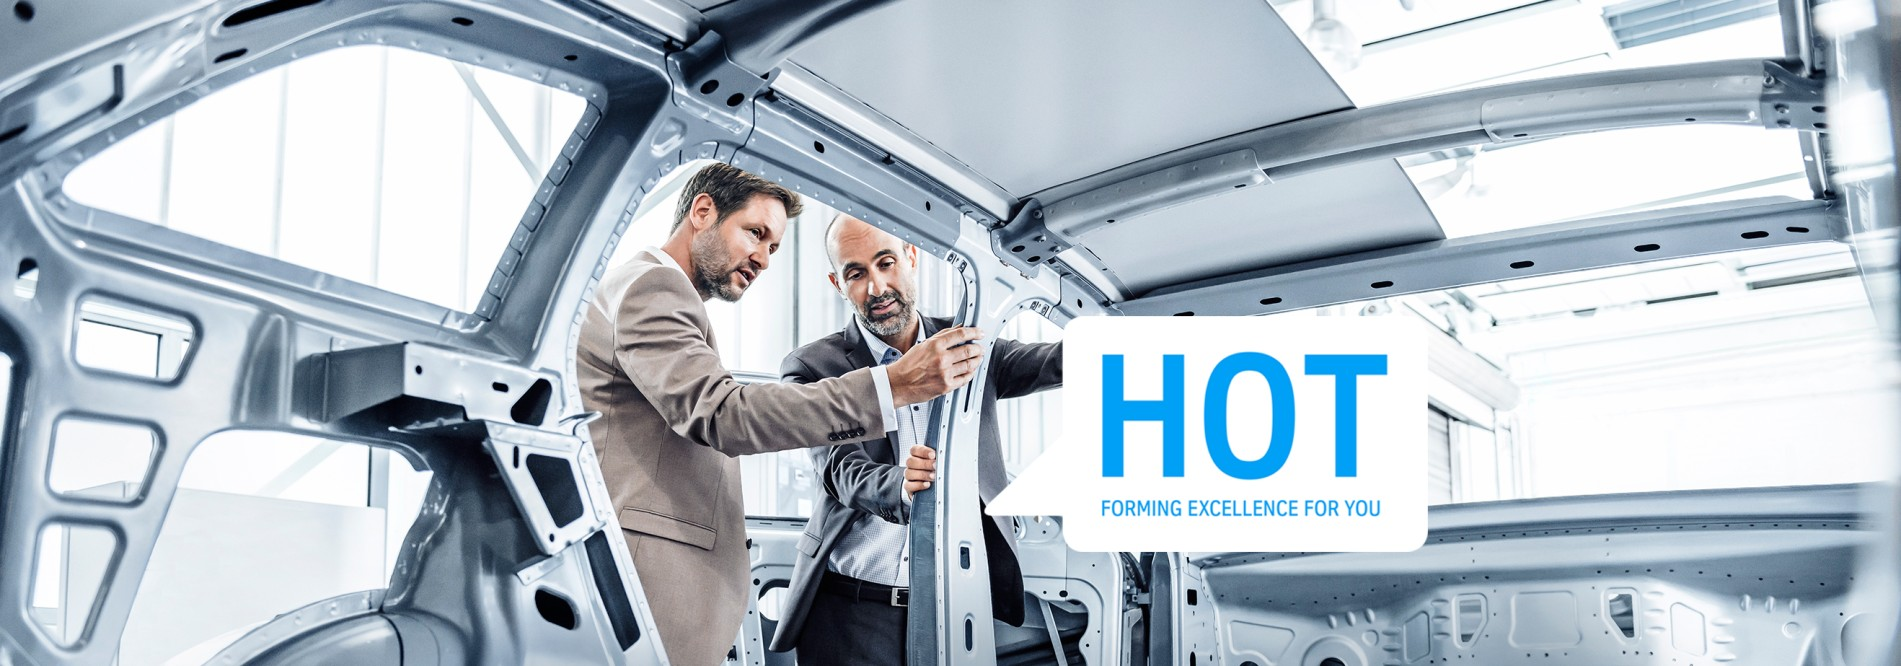 thyssenkrupp Steel Europe - Hot forming partner: Our automotive know-how